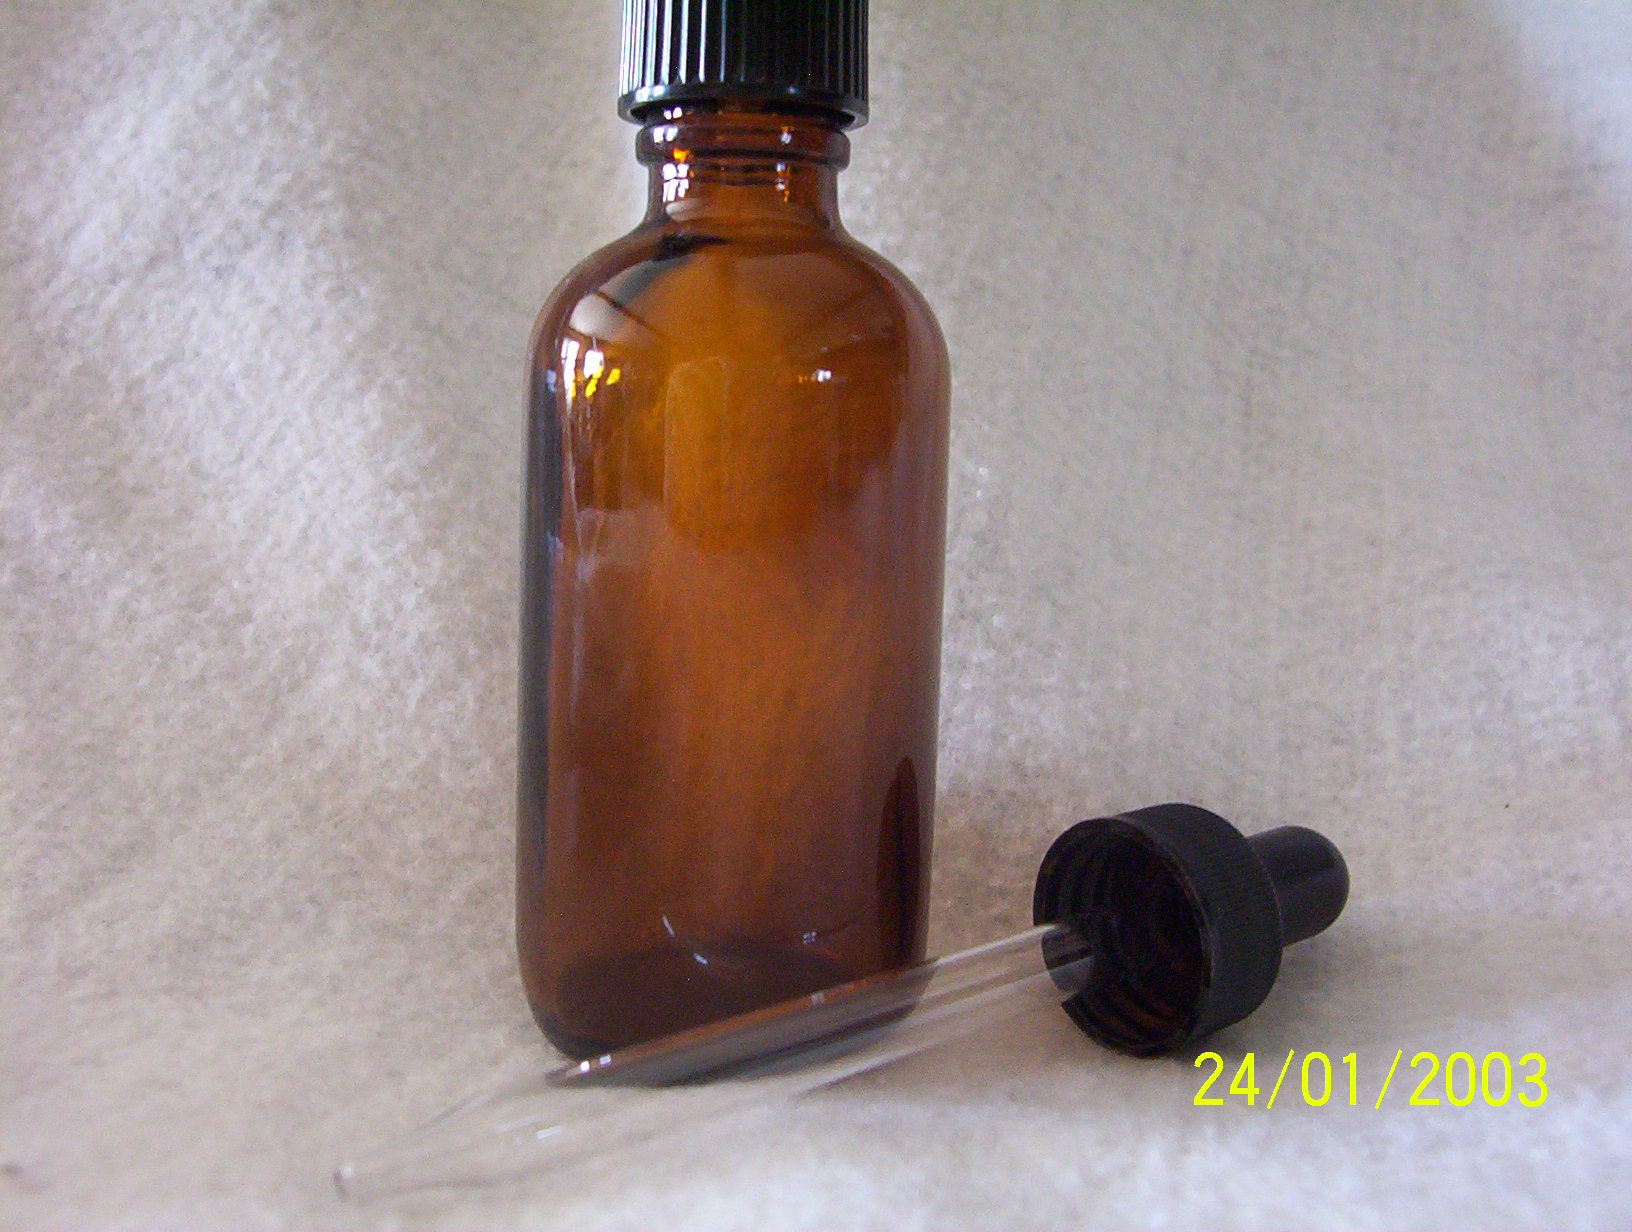 1 oz. Cobalt glass bottle with black cap